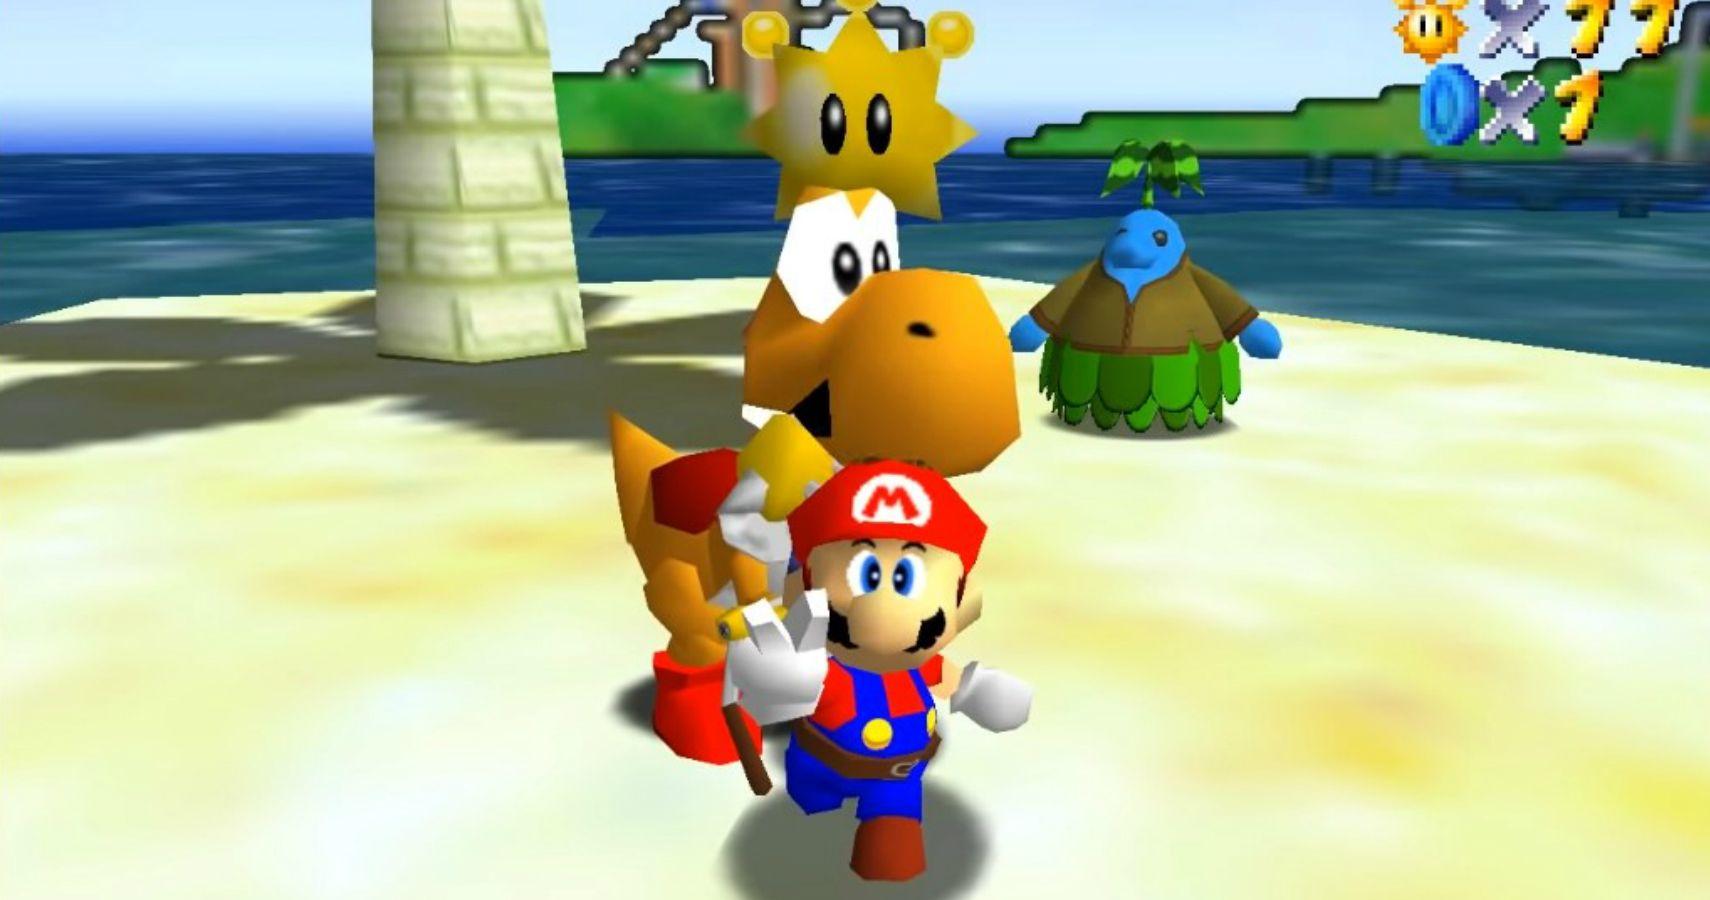 Modder Manages To Recreate Super Mario Sunshine In Super Mario 64